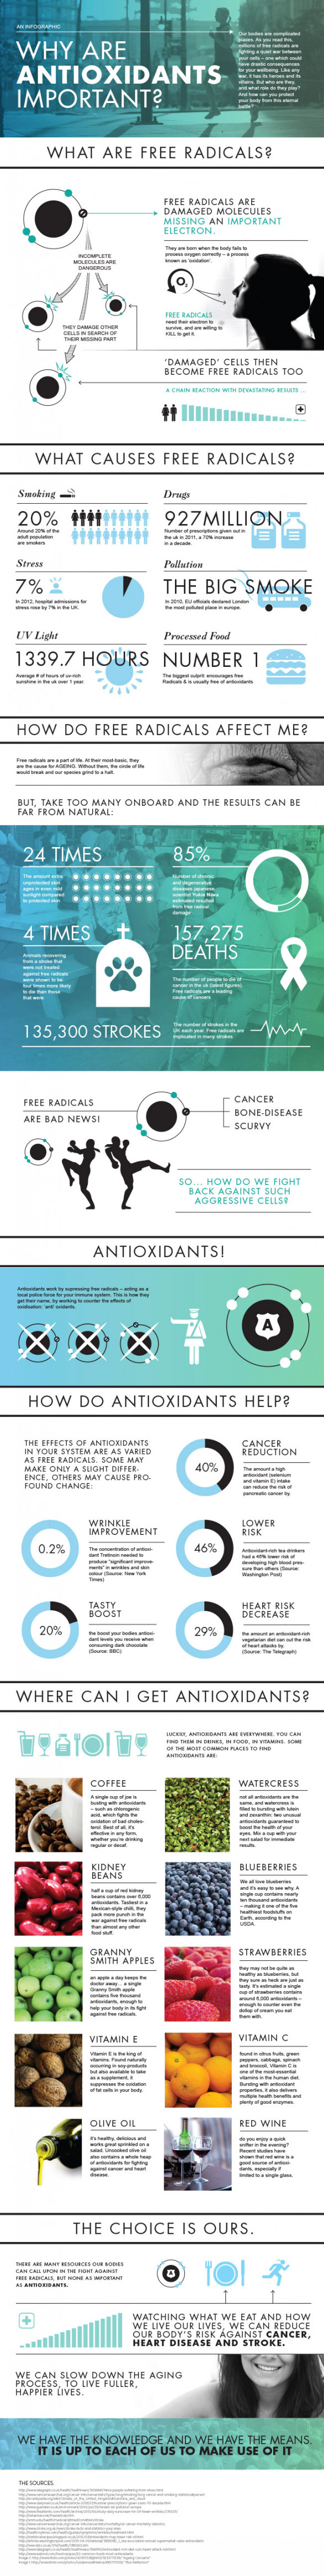 Why Are Antioxidants Important?